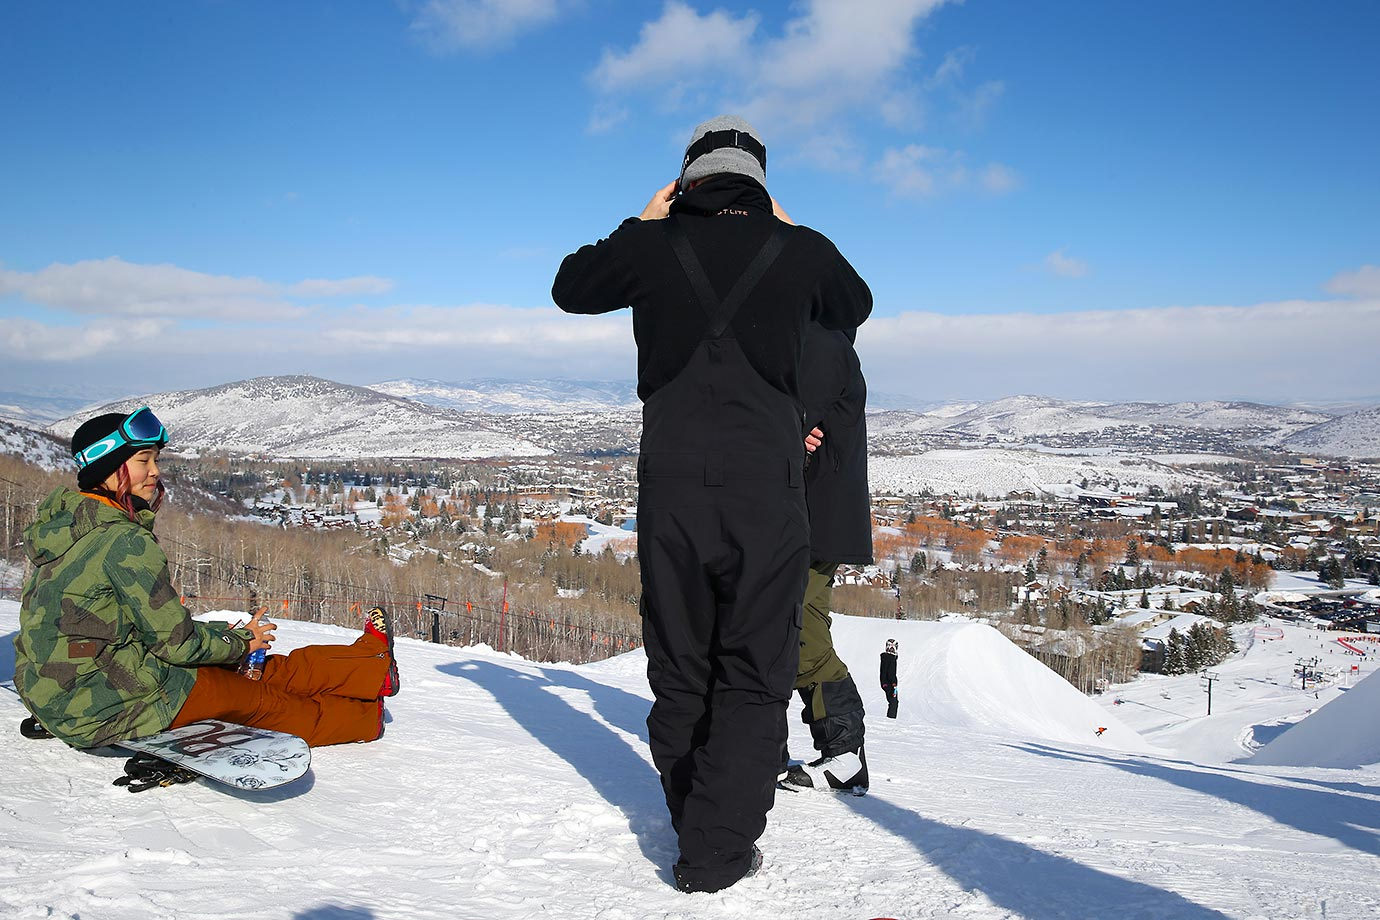 Chloe Kim takes a break on top of the mountain in Park City.